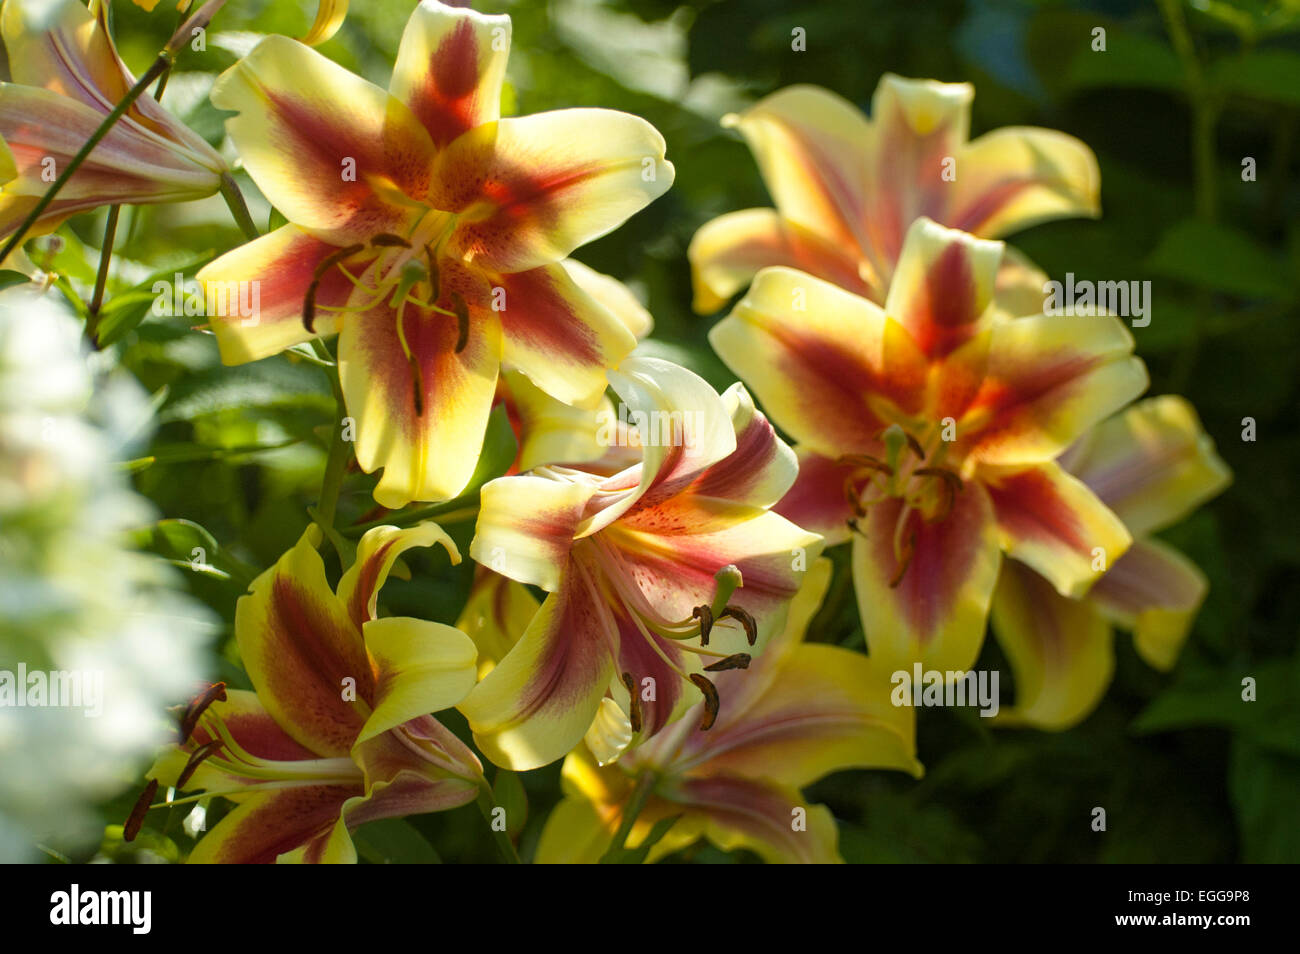 lily (latin lílium) - genus of plants in the family liliaceae stock